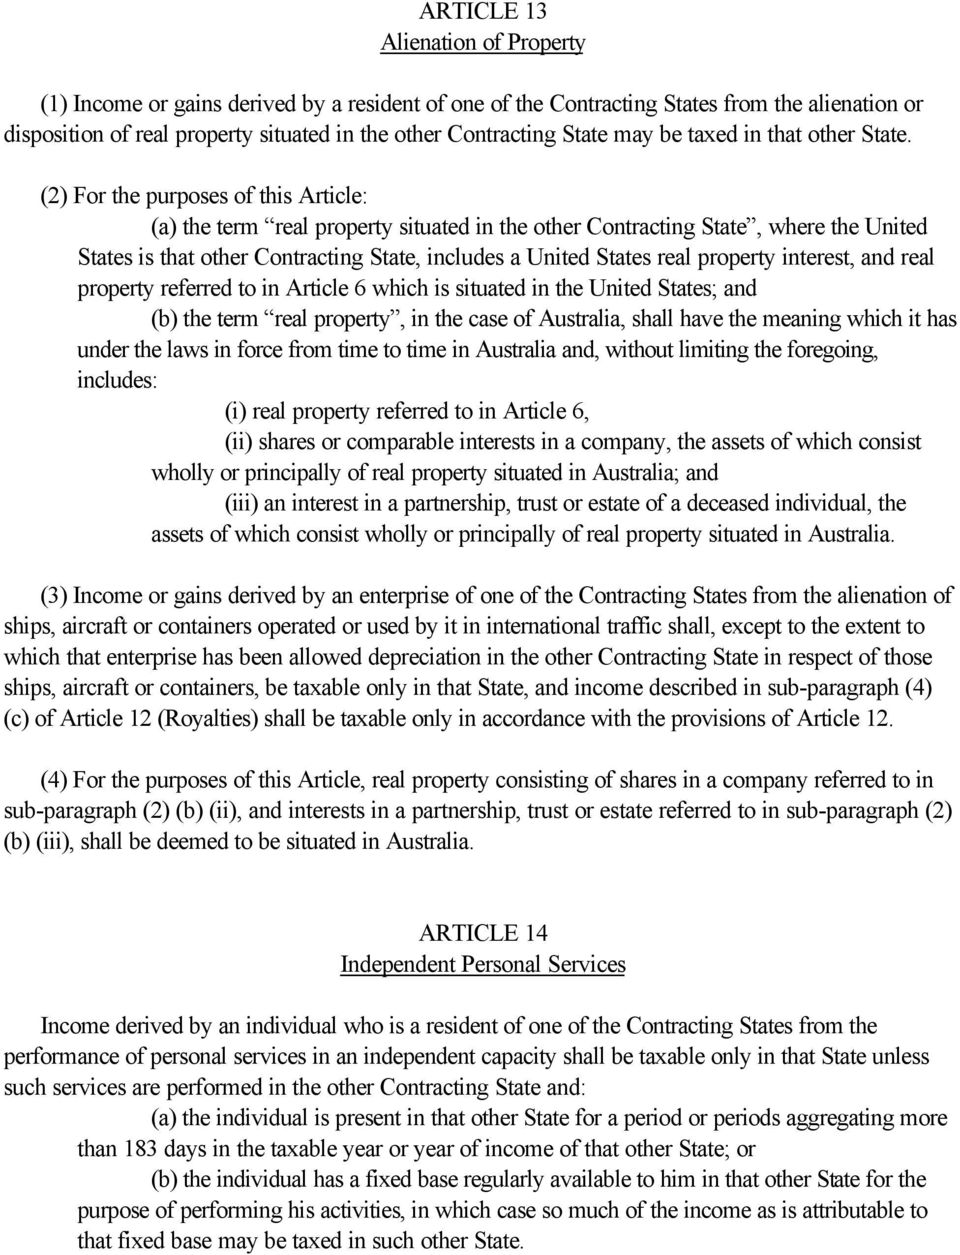 (2) For the purposes of this Article: (a) the term real property situated in the other Contracting State, where the United States is that other Contracting State, includes a United States real